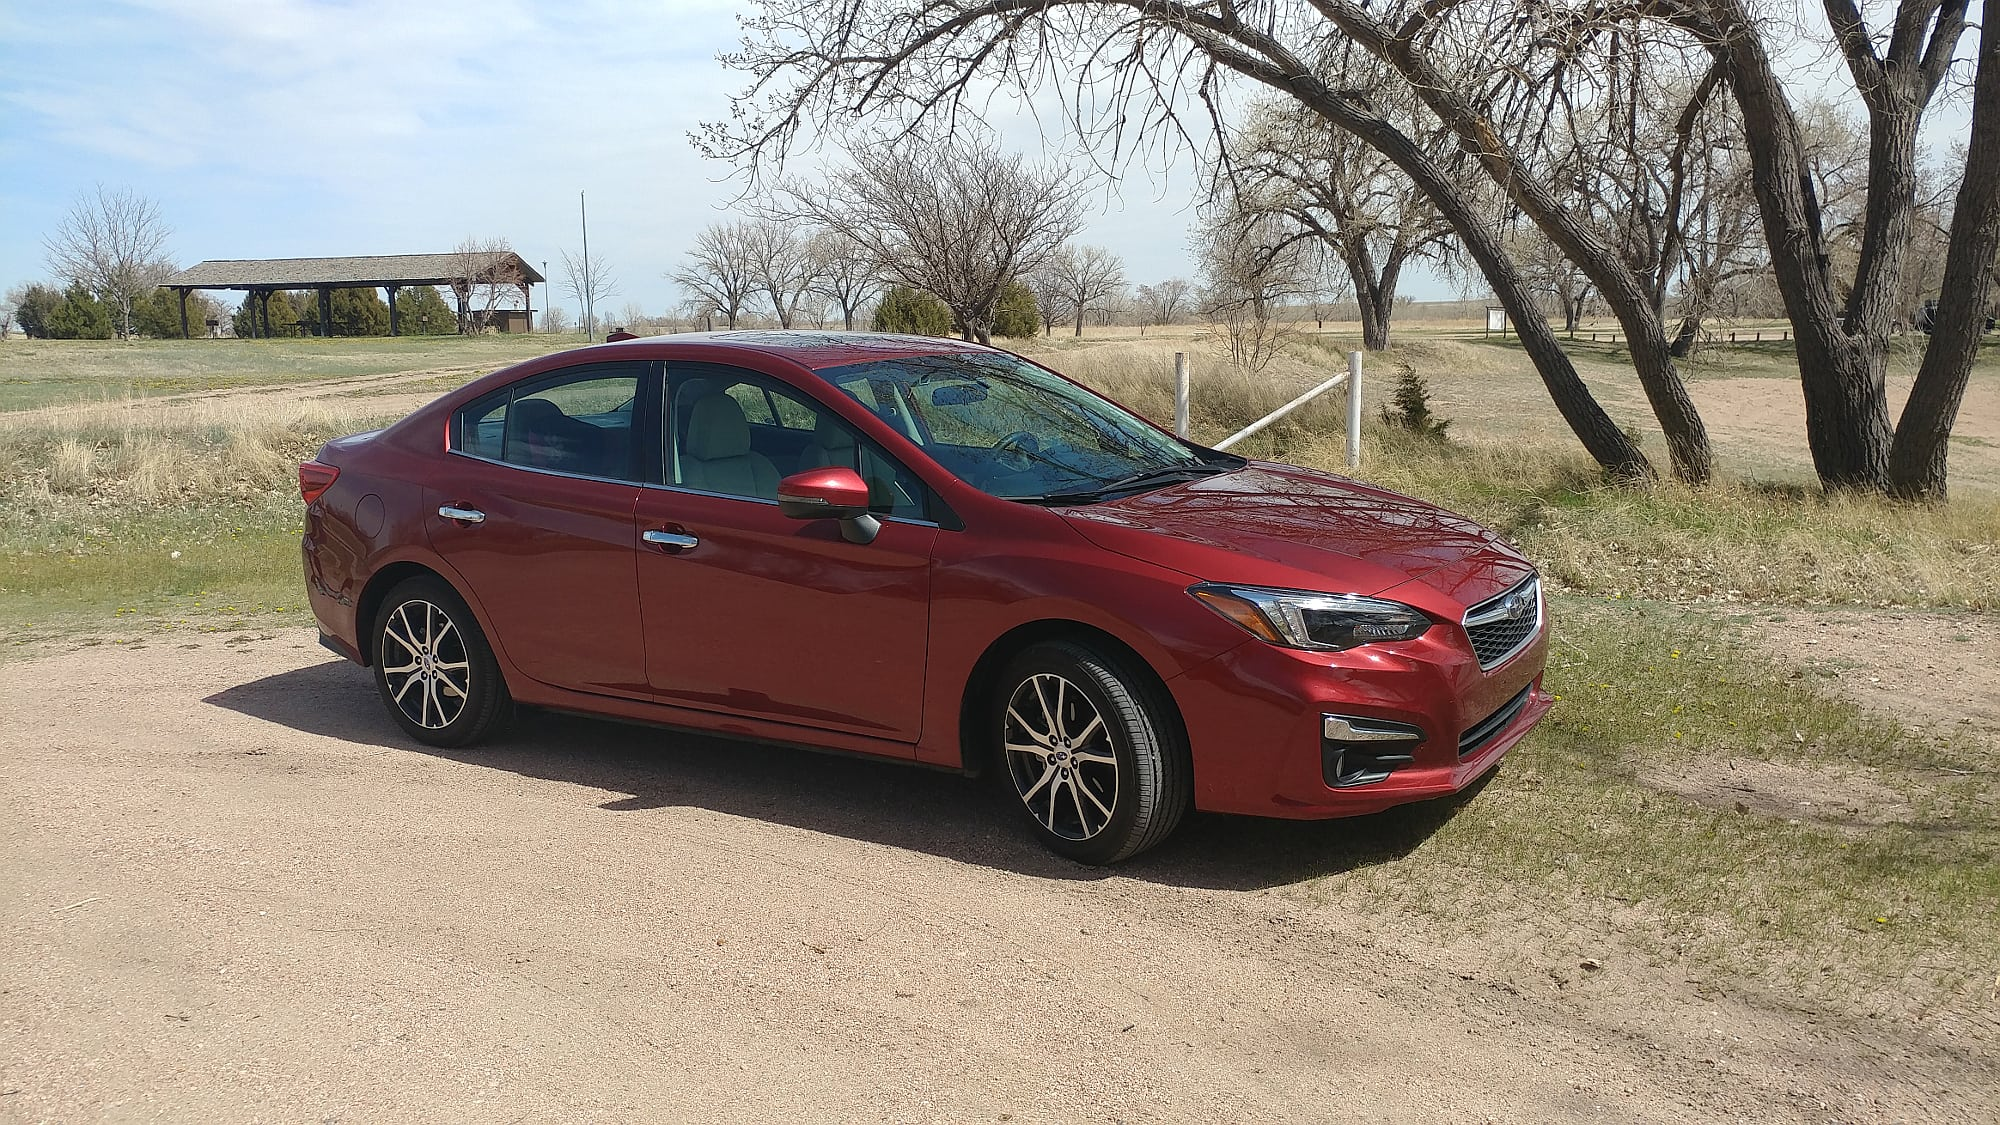 Review: 2017 Subaru Impreza is more brains than brawn